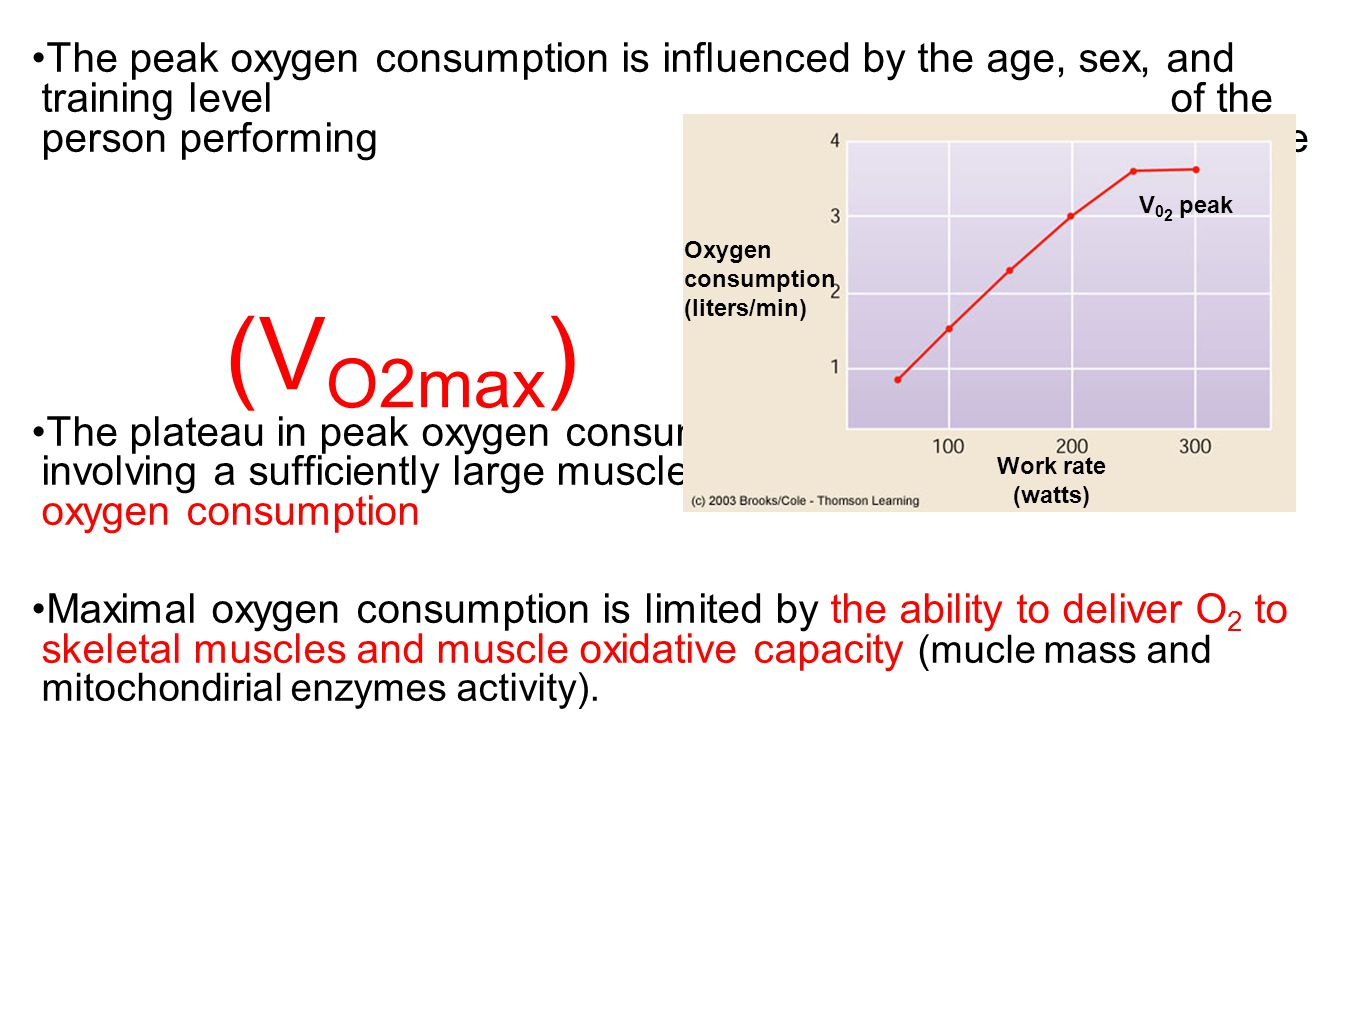 The peak oxygen consumption is influenced by the age, sex, and training level of the person performing the exercise